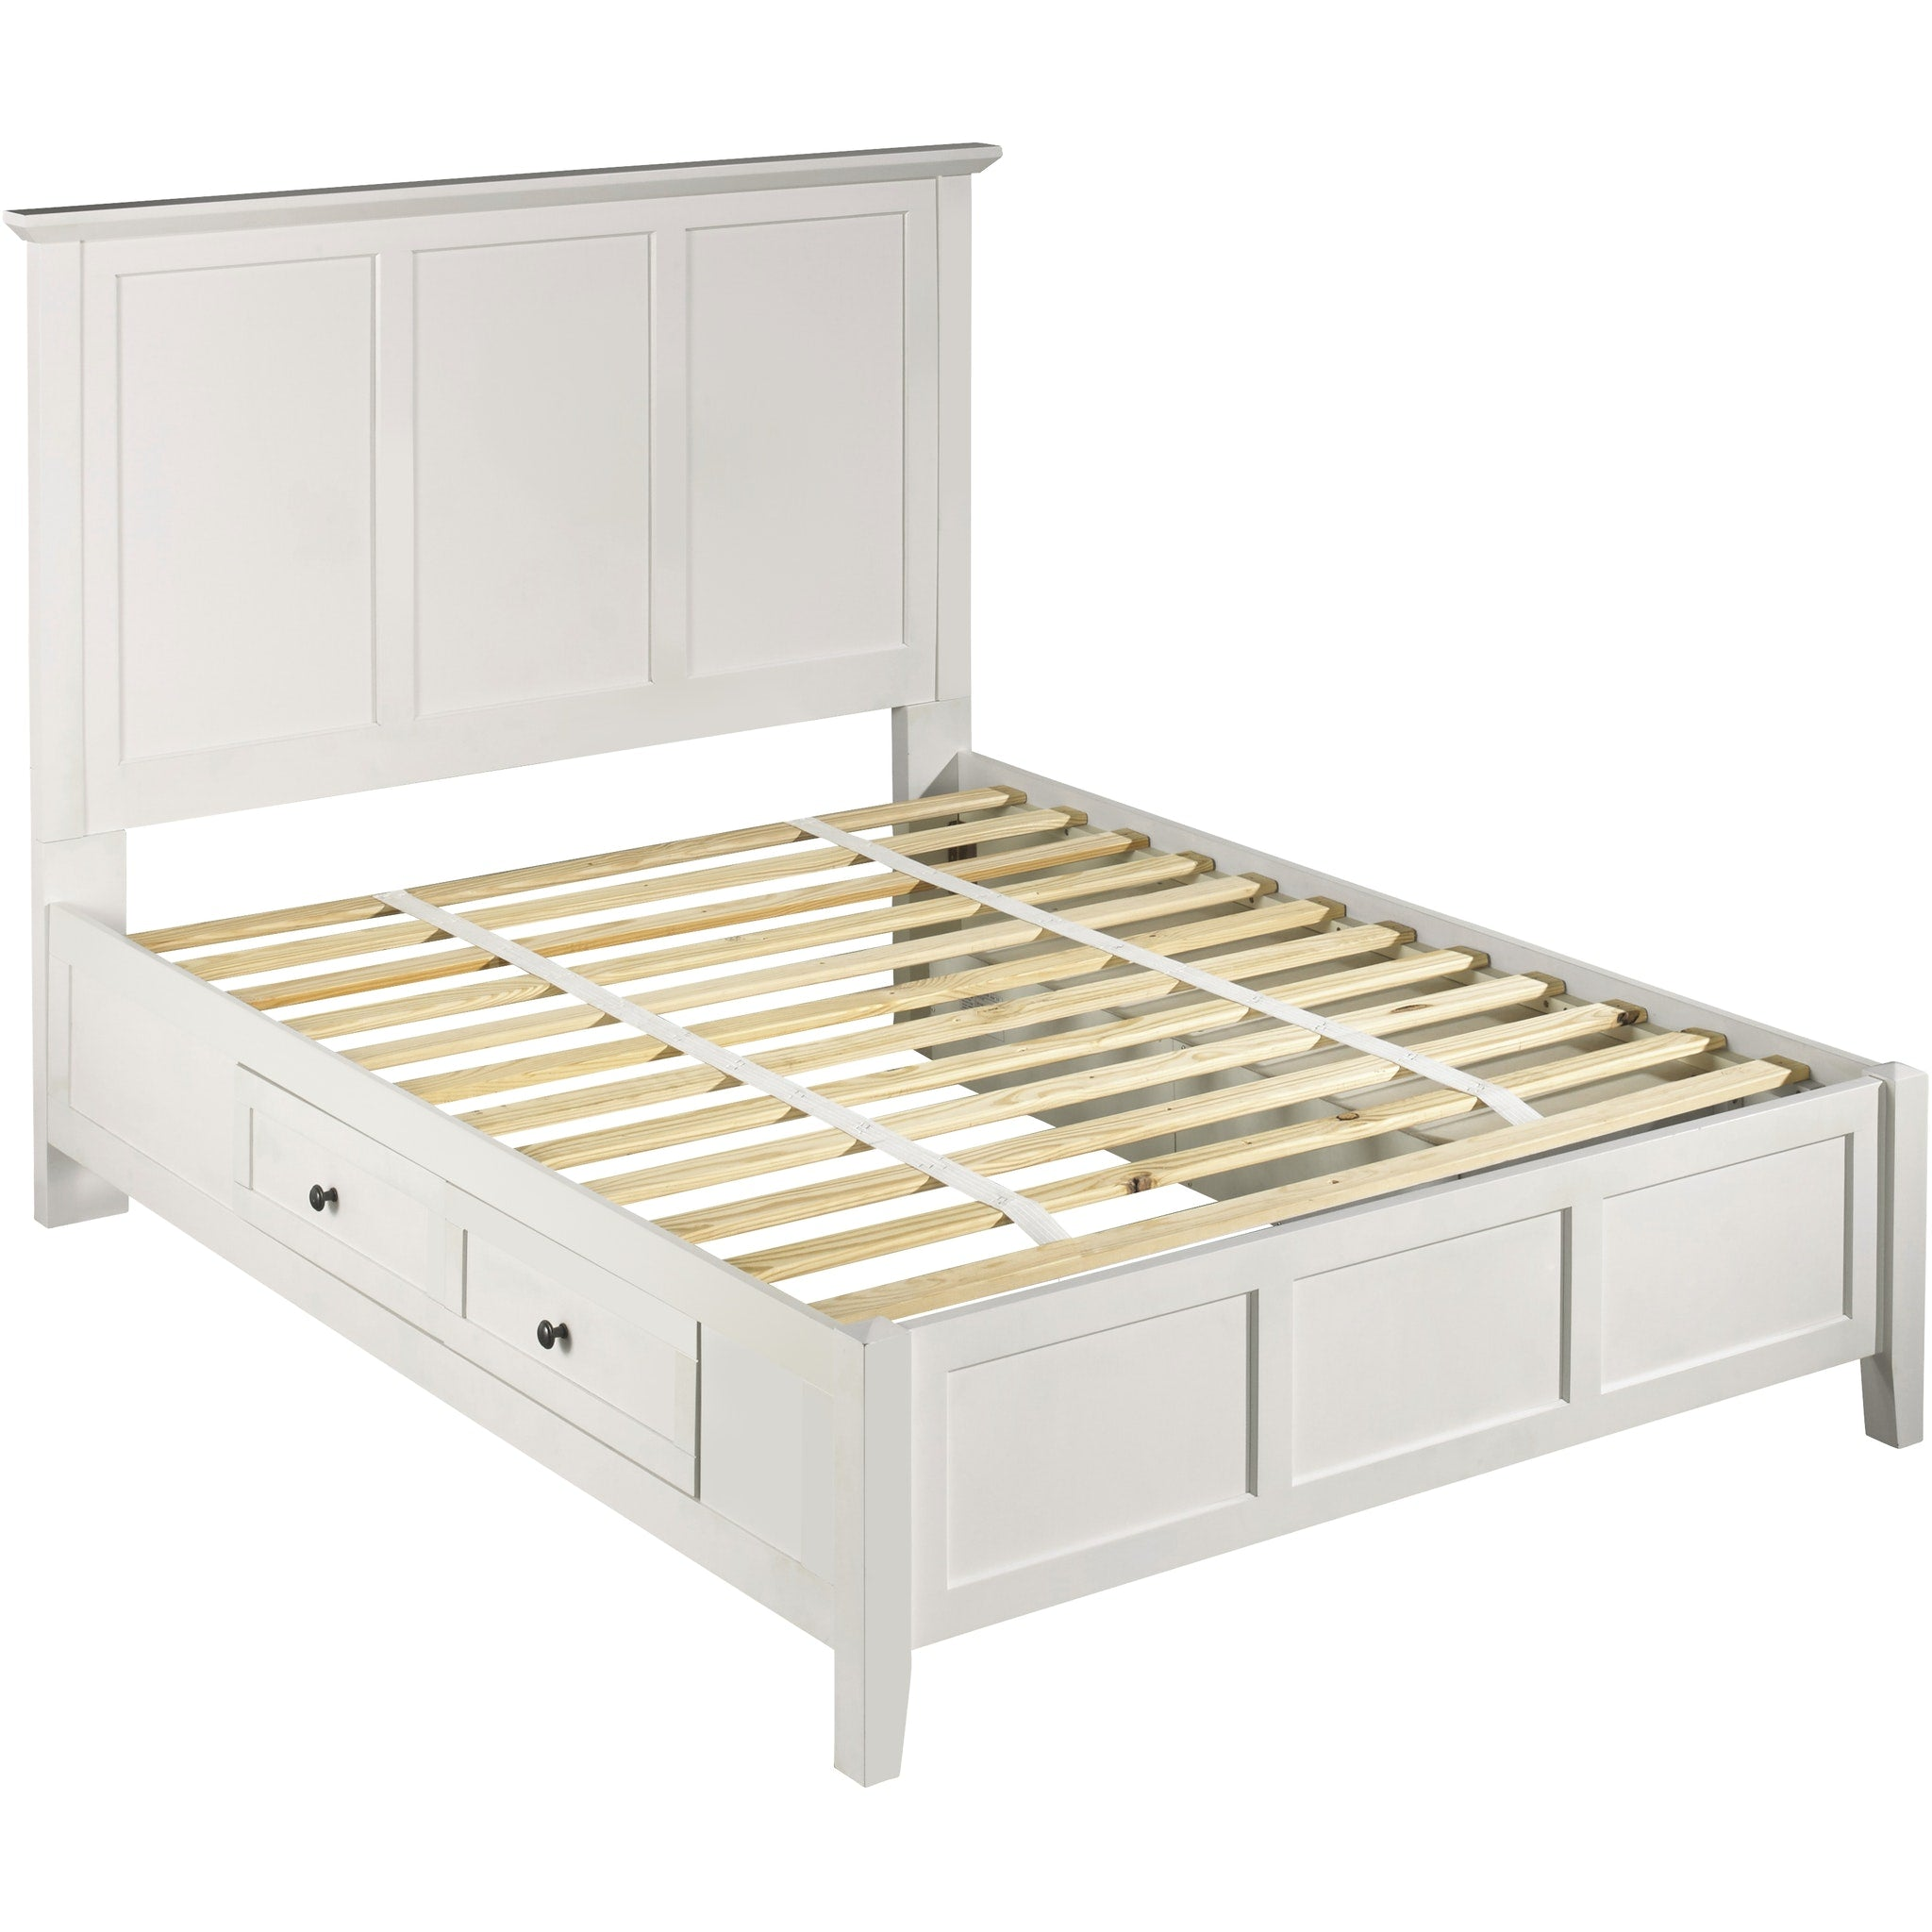 Paragon King-size Four Drawer Storage Bed in White